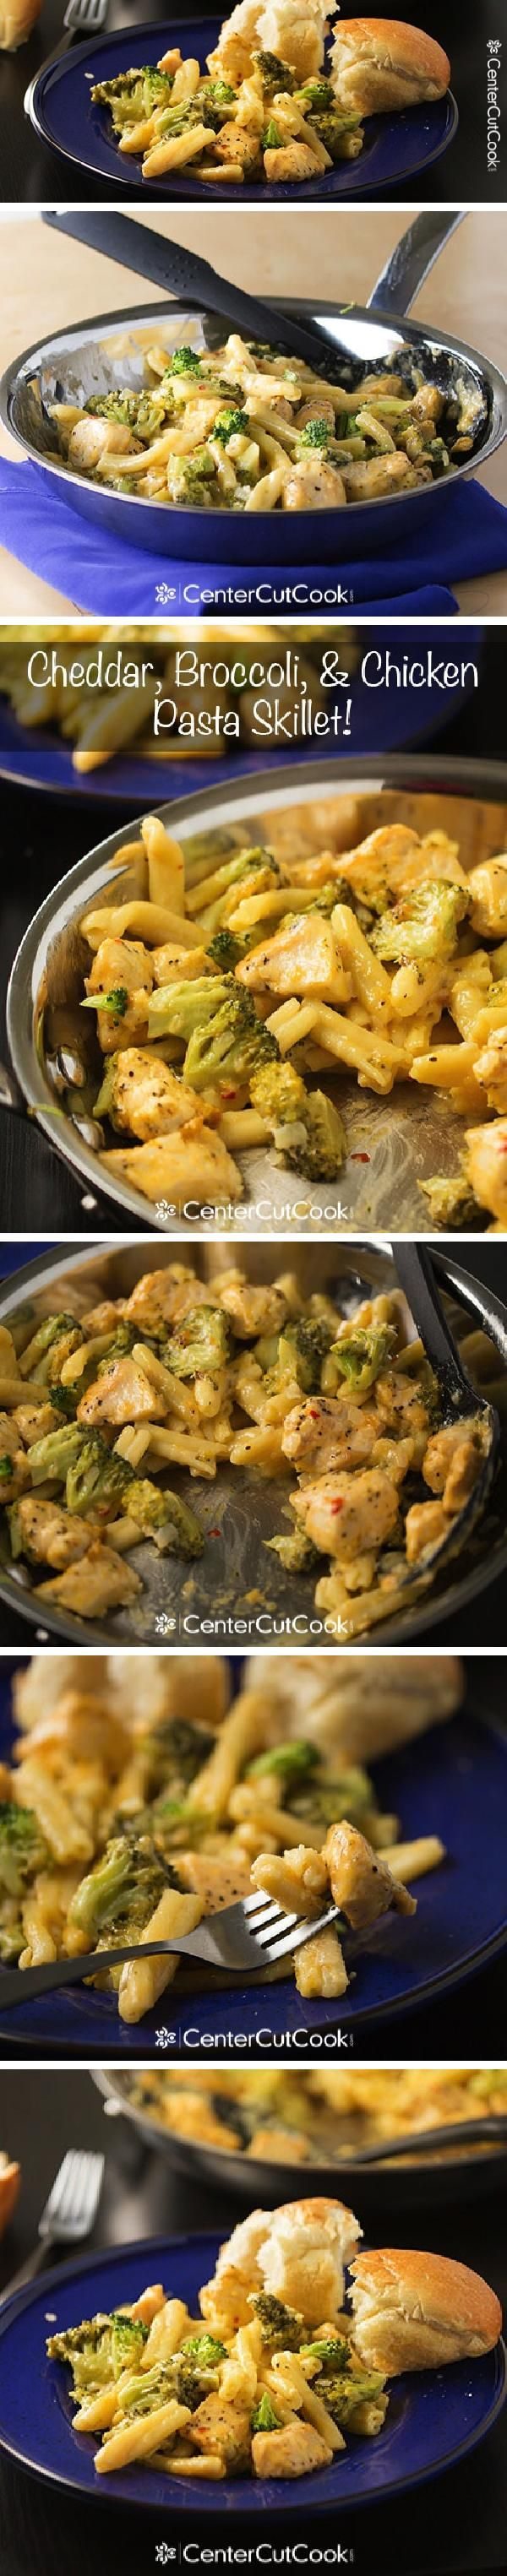 One SKILLET CHEDDAR, BROCCOLI and CHICKEN PASTA! The pasta cooks in the same skillet as everything else... one pot, easy, delicious!